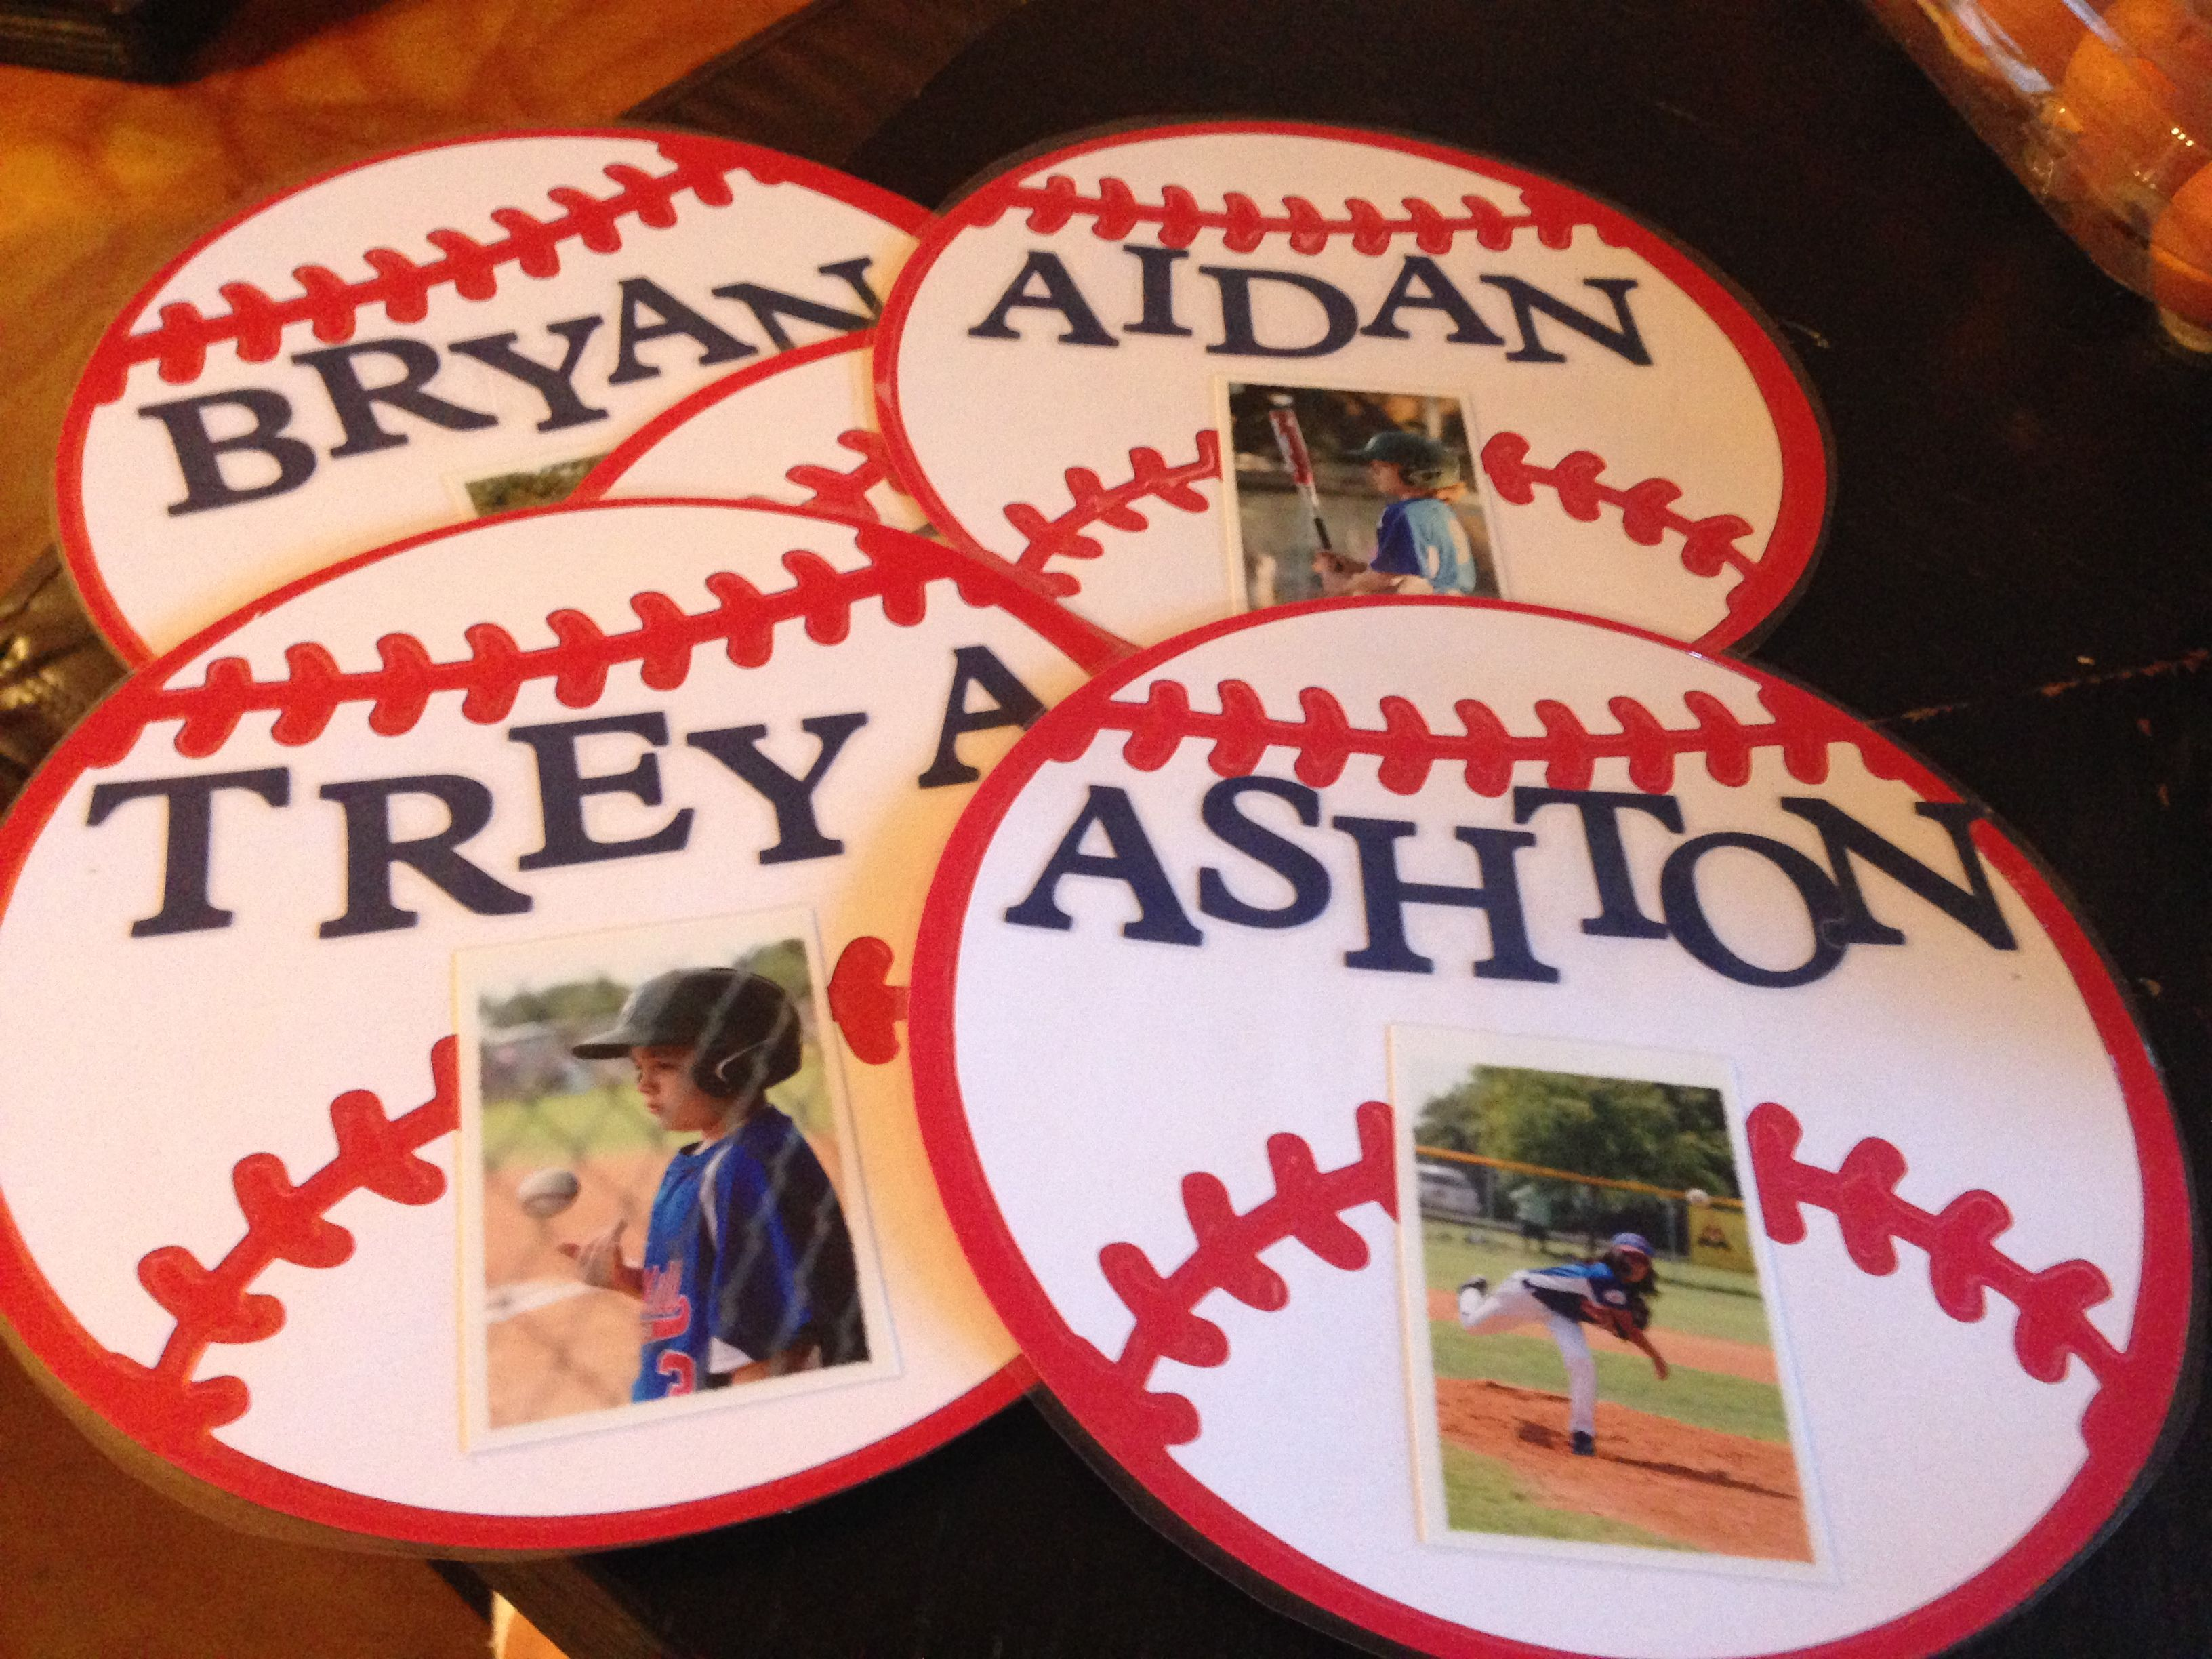 Made These For The Hotel Doors During All Star Baseball Great Baseball Idea For Any Select Or All Star Baseball Tournament Team Mom Baseball Travel Baseball